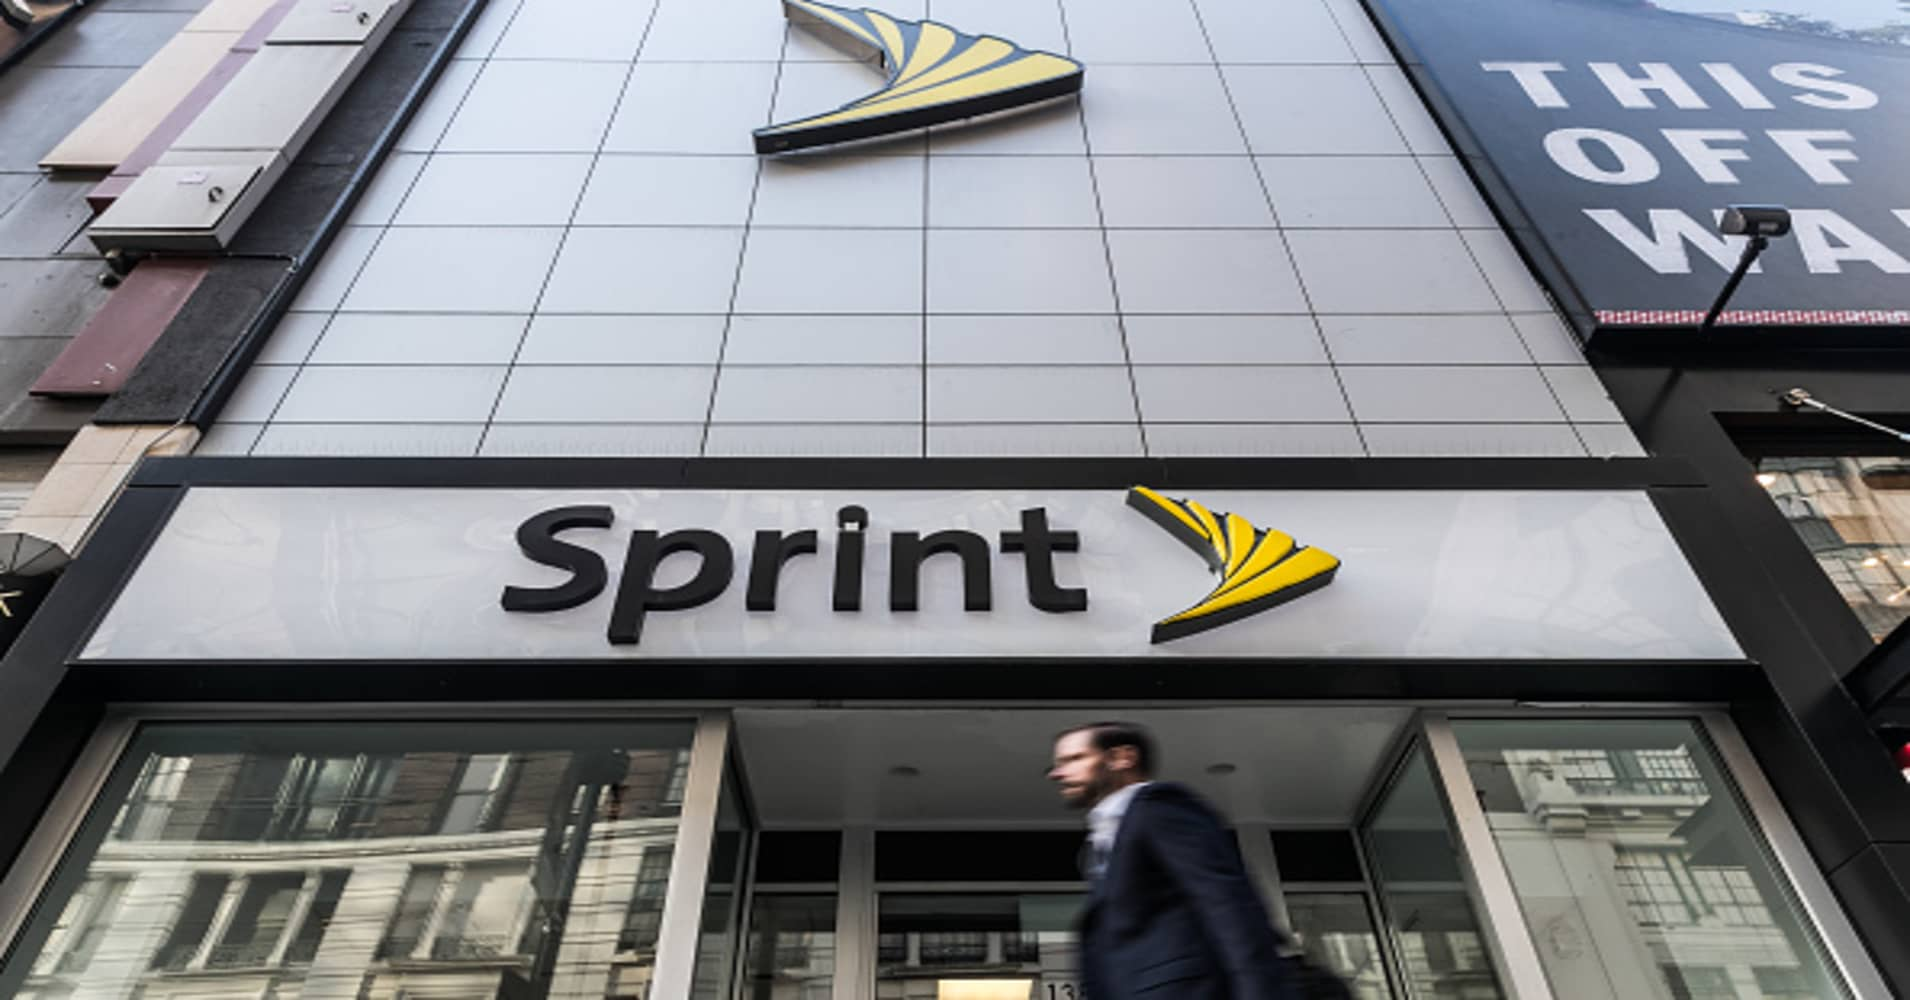 Sprint T Mobile Dive As Regulatory Uncertainty Outweighs Deal News